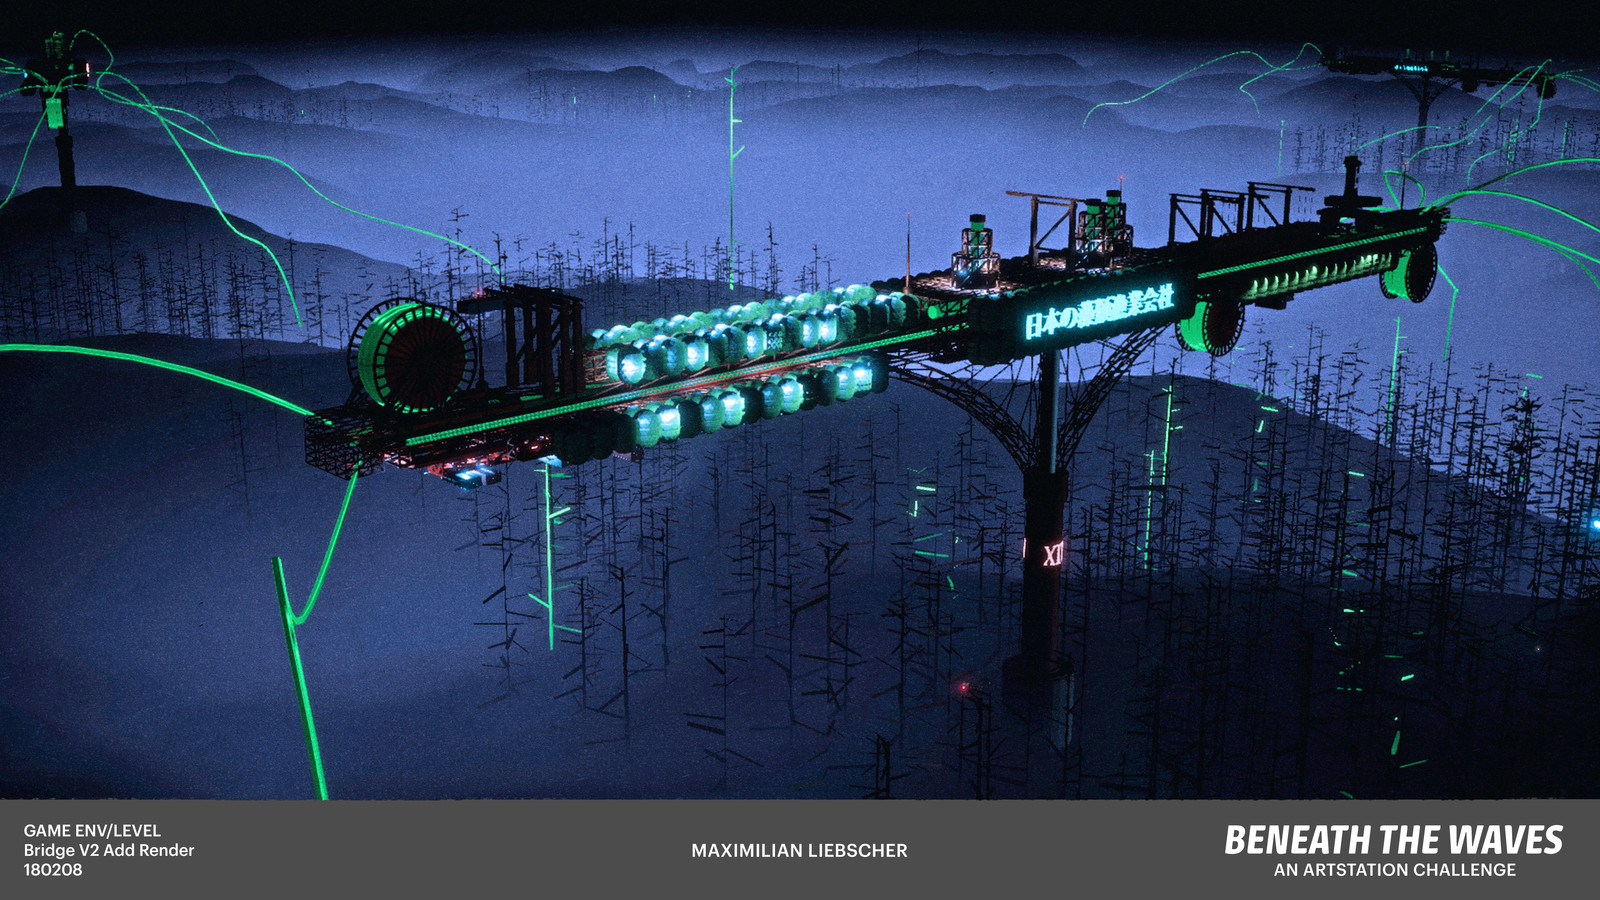 The conveyor bridge reaches out its deadly arms into the forests